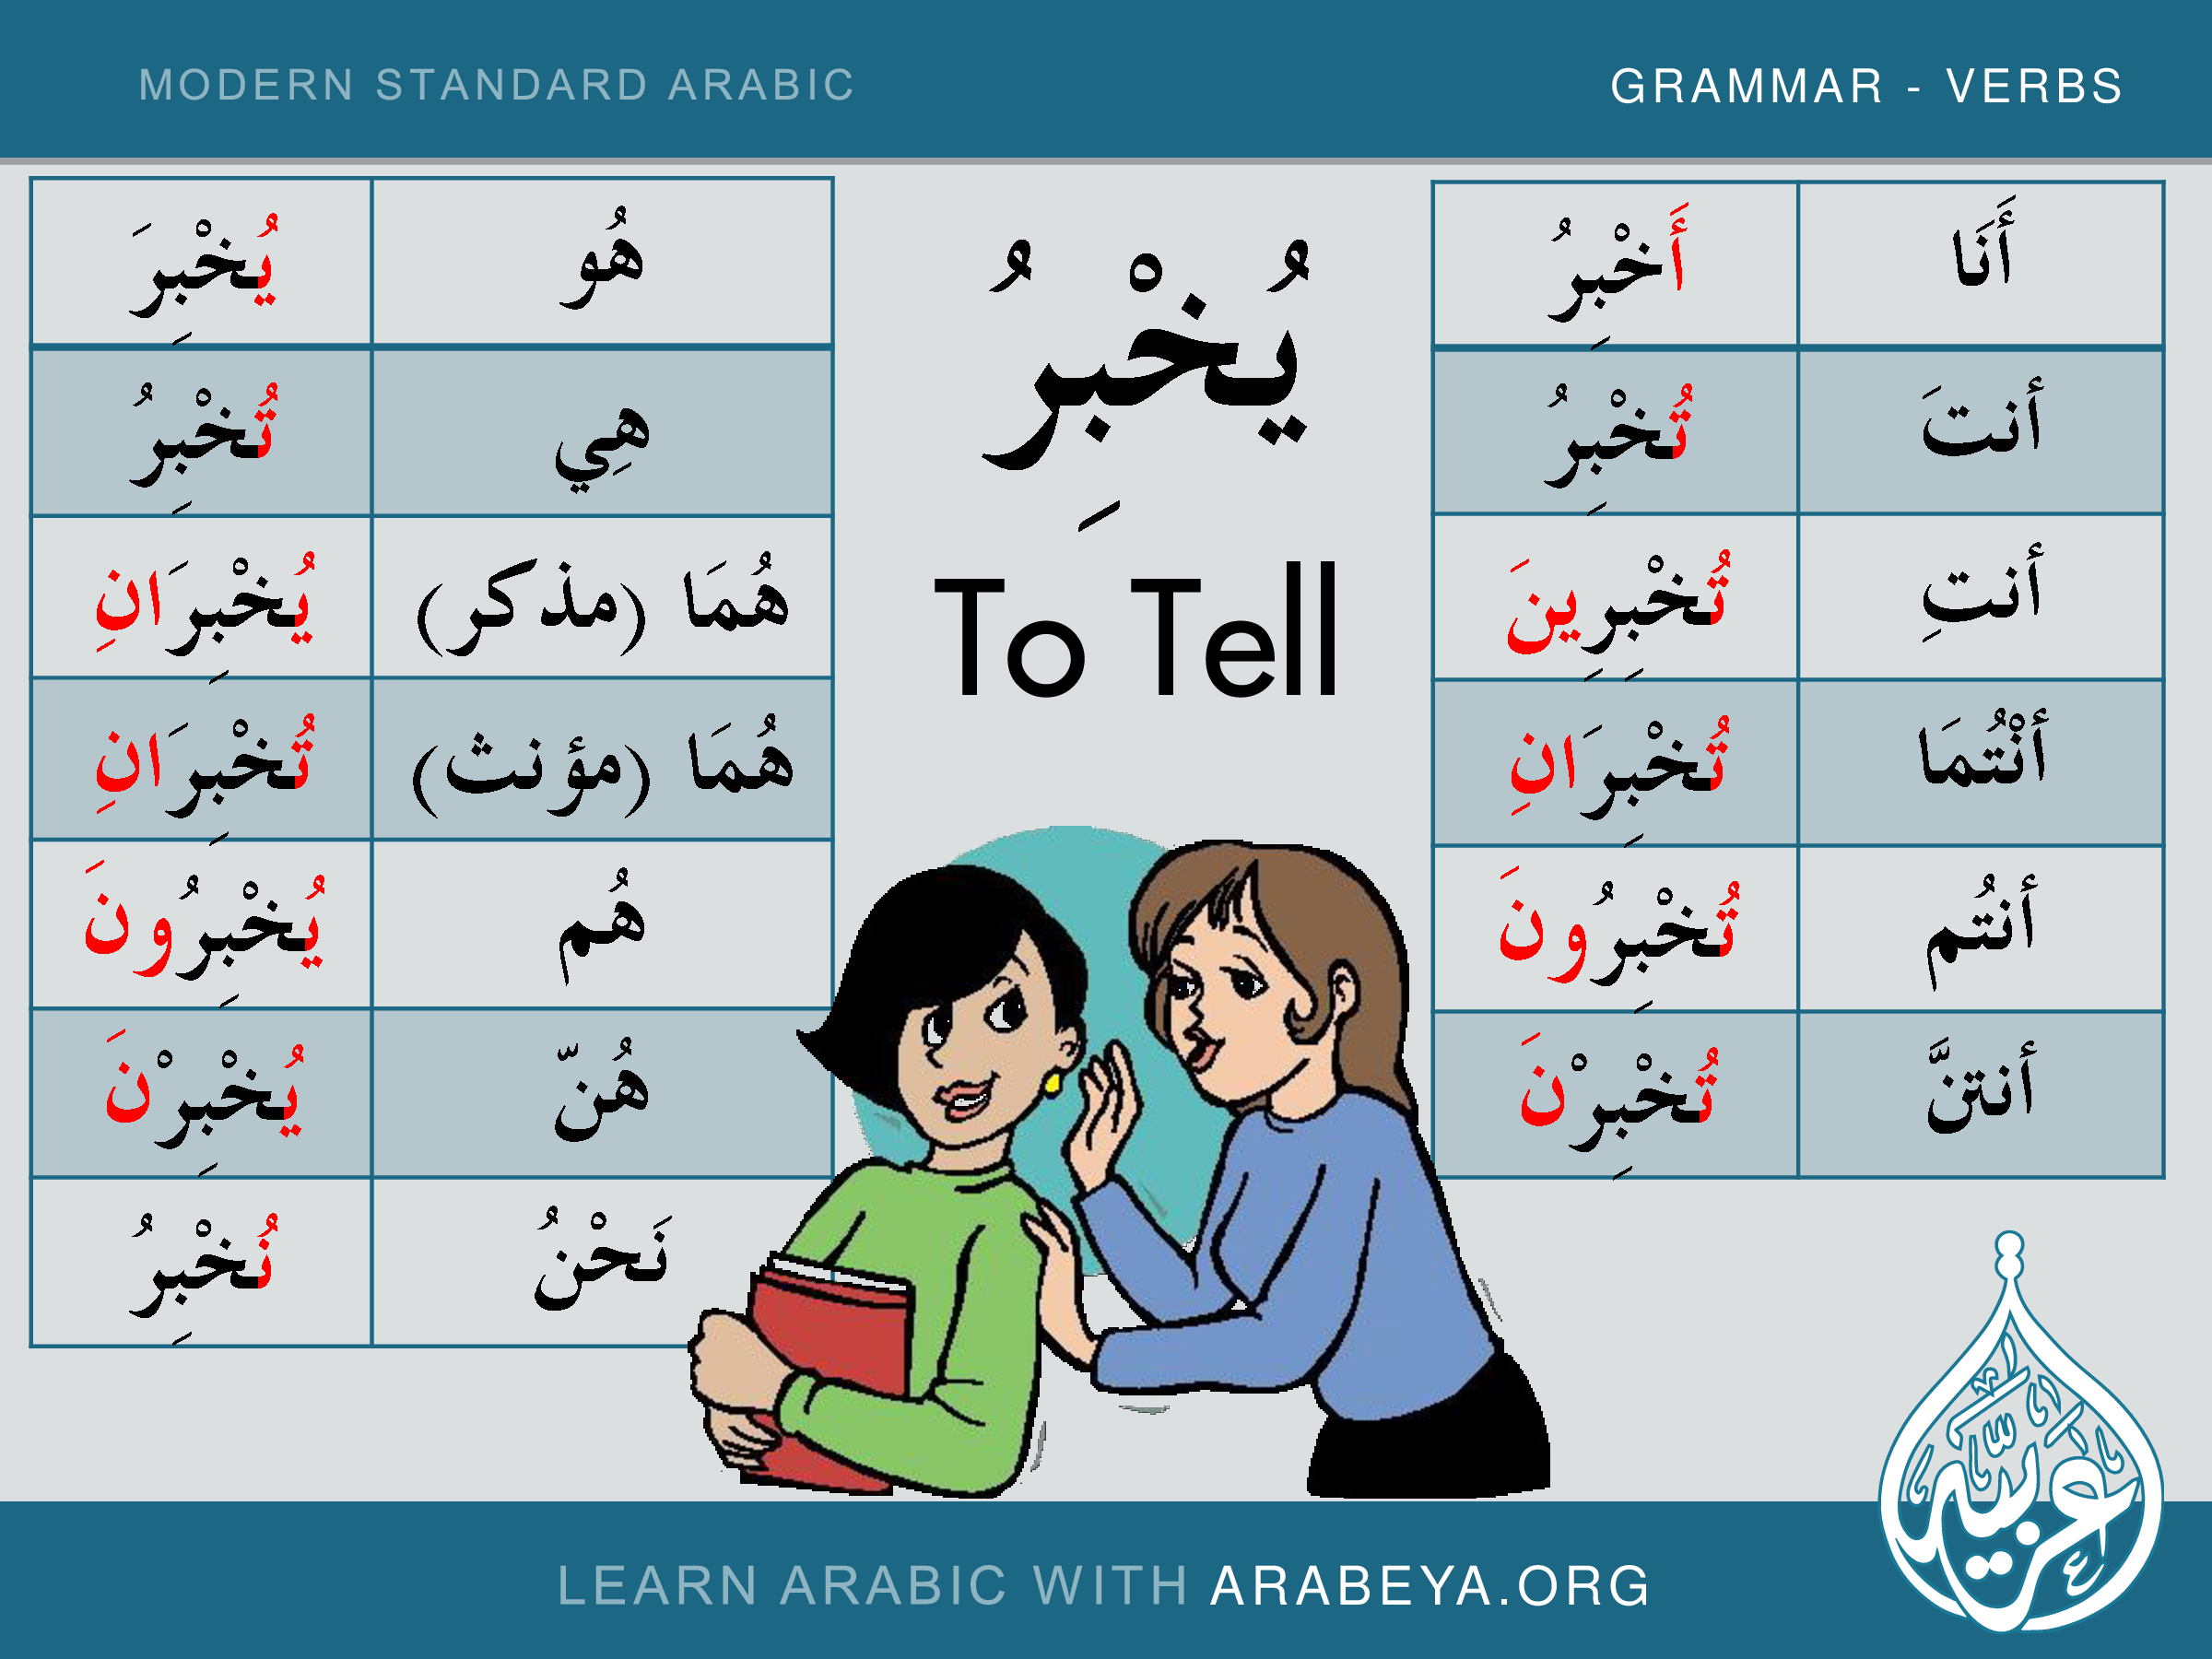 Arabic Word of the Day - Free Arabic Vocabulary Lessons Online